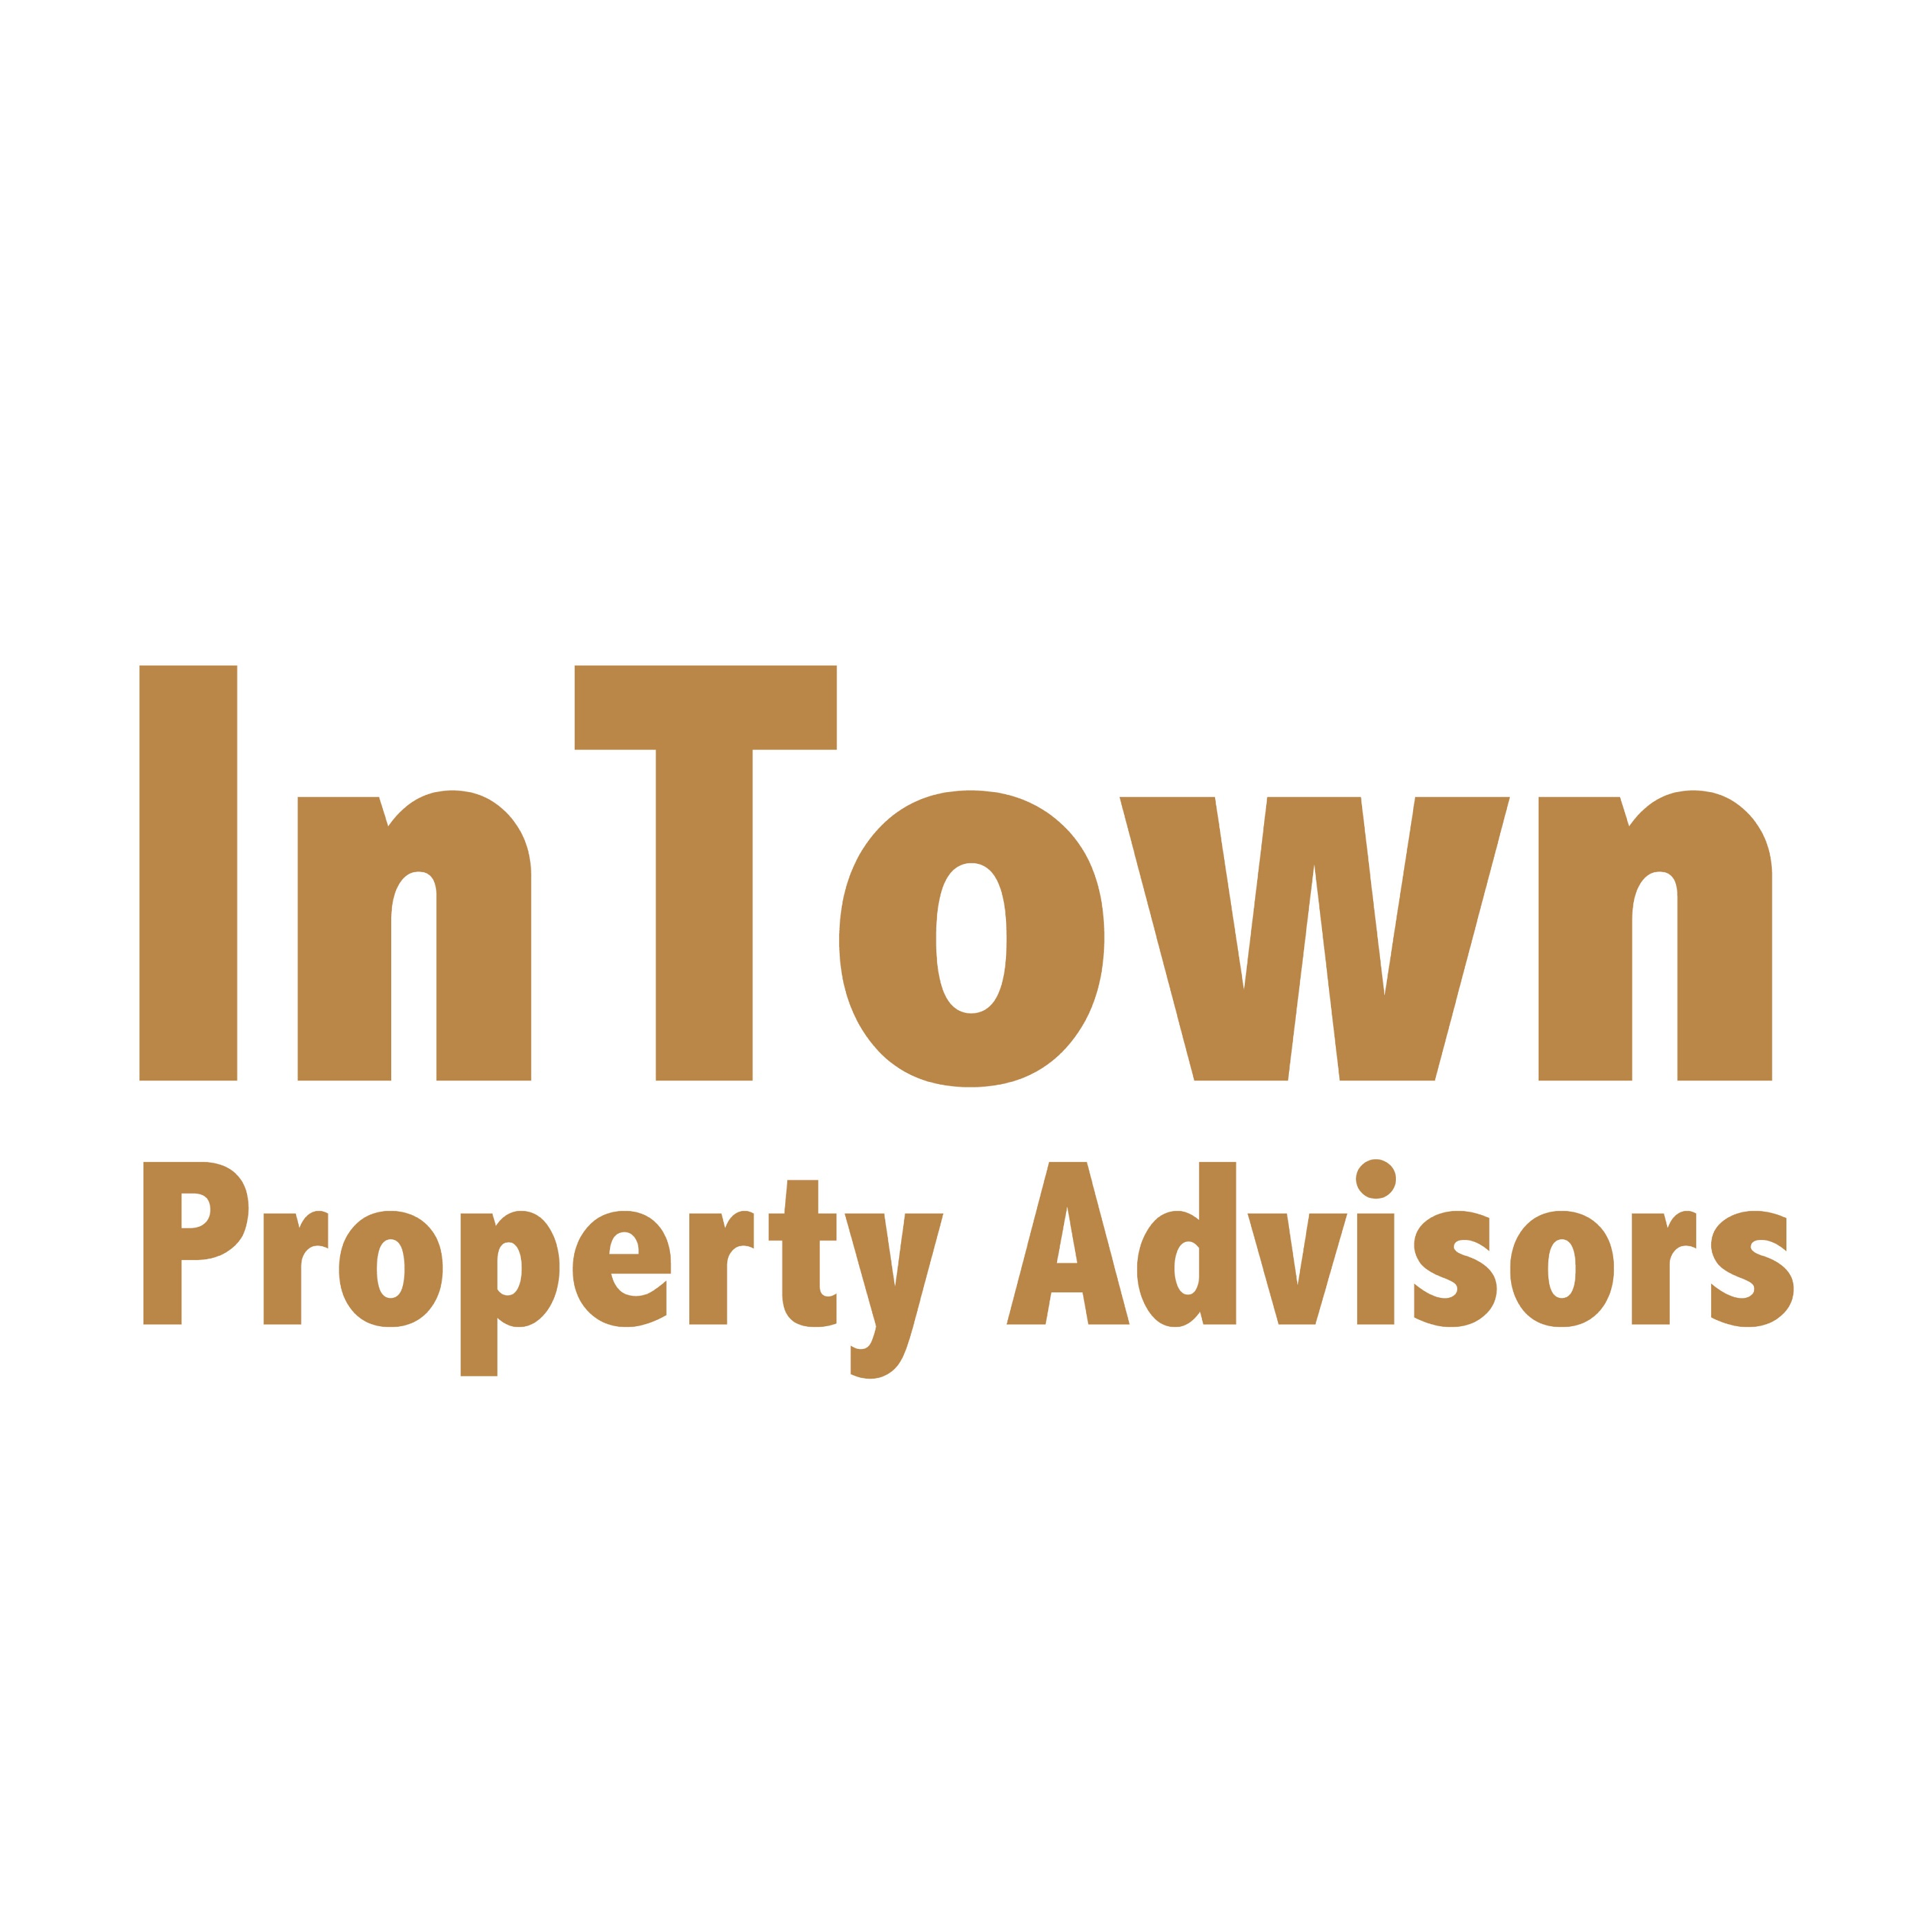 Intown Property Advisors Logo